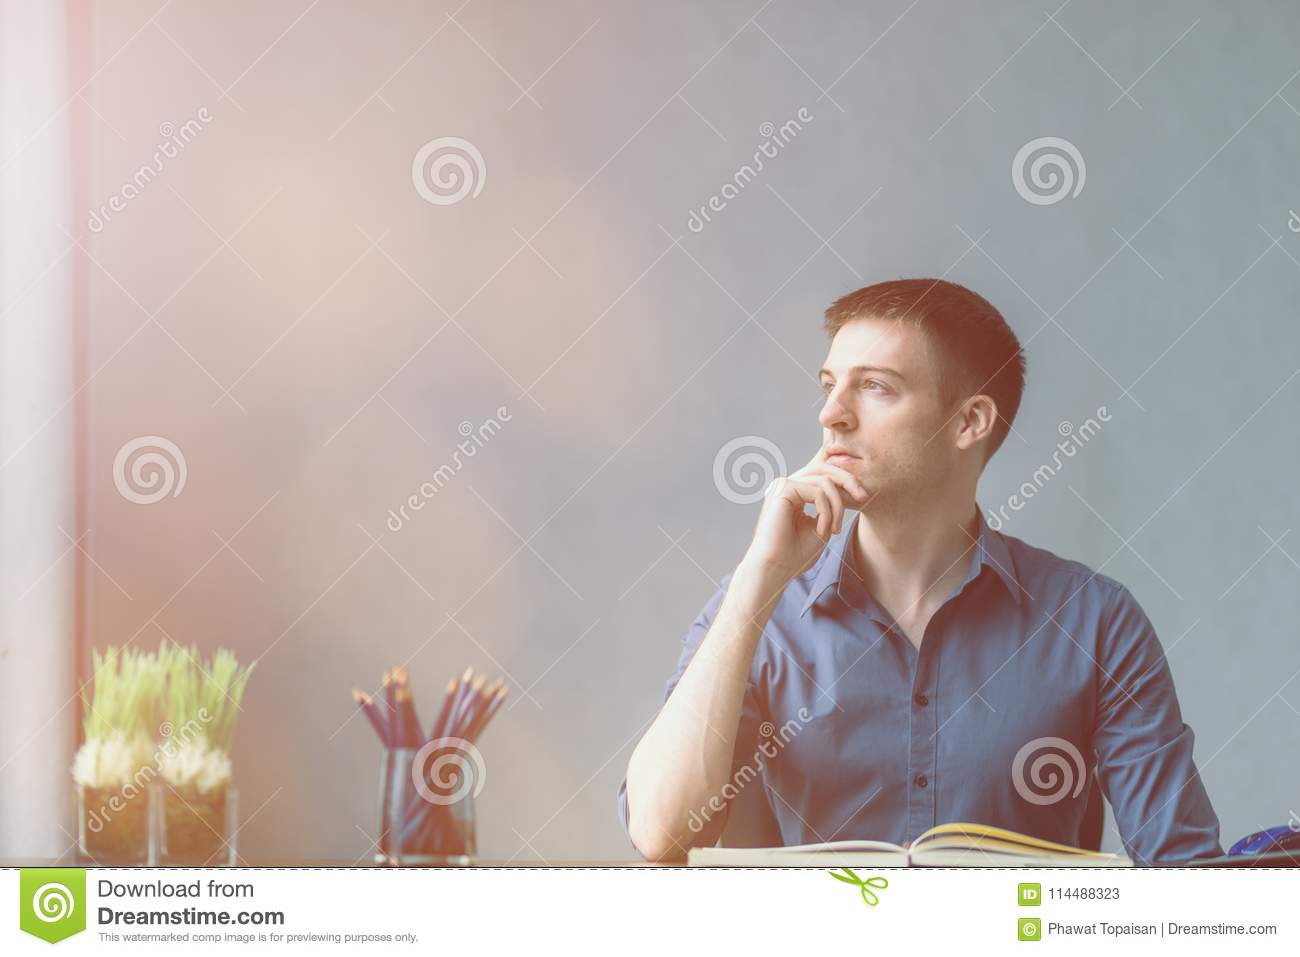 Young businessman caucasians sitting at desk office table and taking notes in notebook. Looking out the window on the left